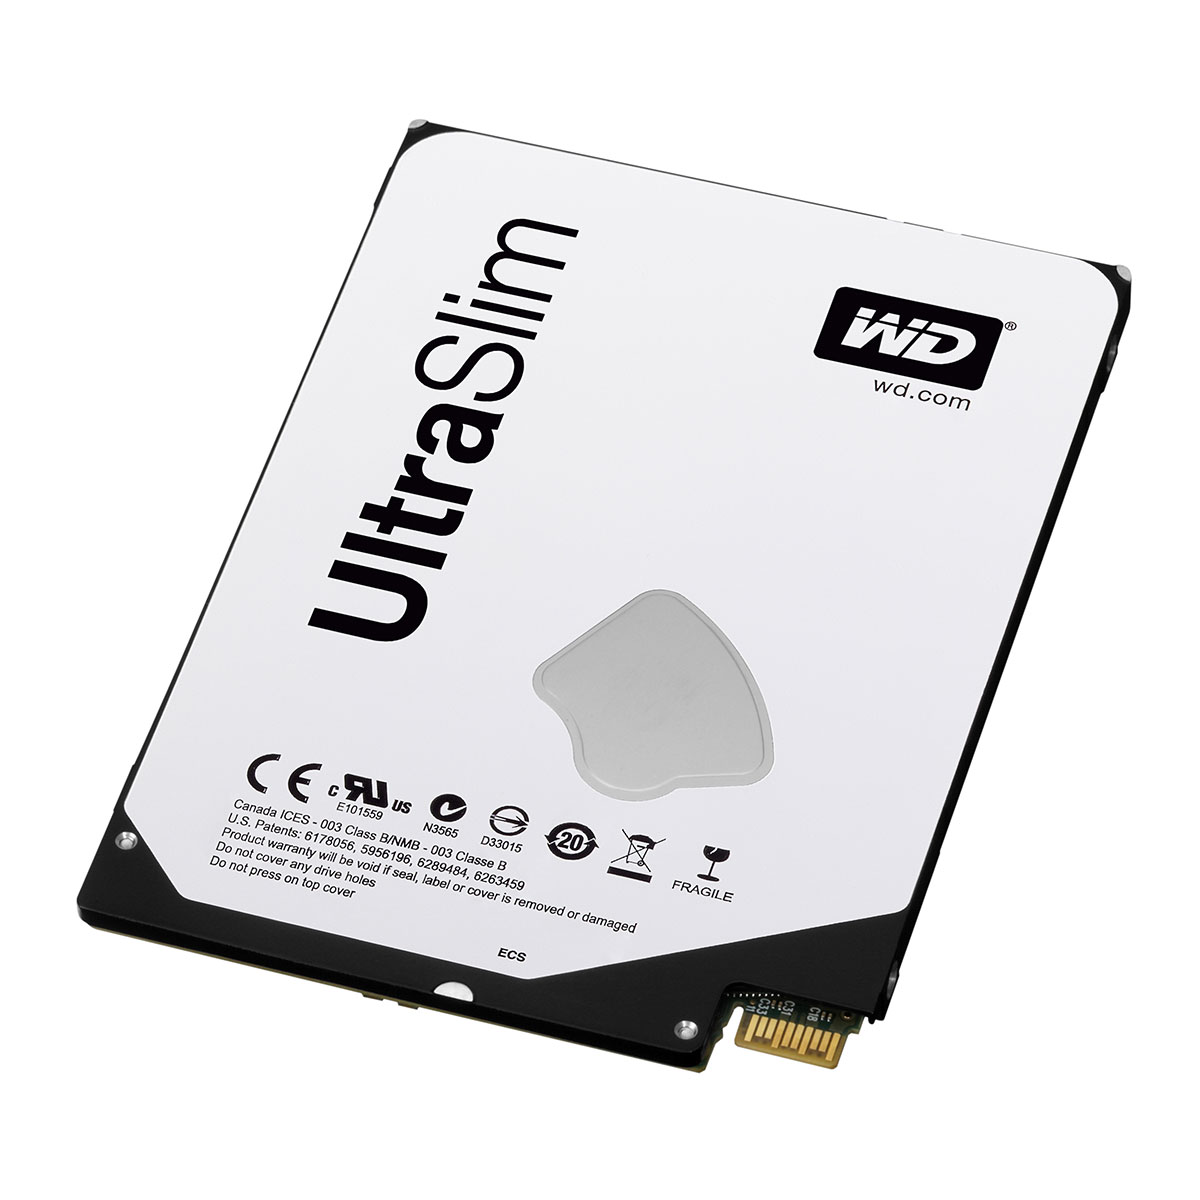 "Disque dur interne WD Blue Mobile 500 Go Ultra-Slim + Adaptateur SATA Disque dur 2.5"" 500 Go 5 mm 5400 RPM 16 Mo Serial ATA III 6 Gb/s Small Form Factor + SATA"